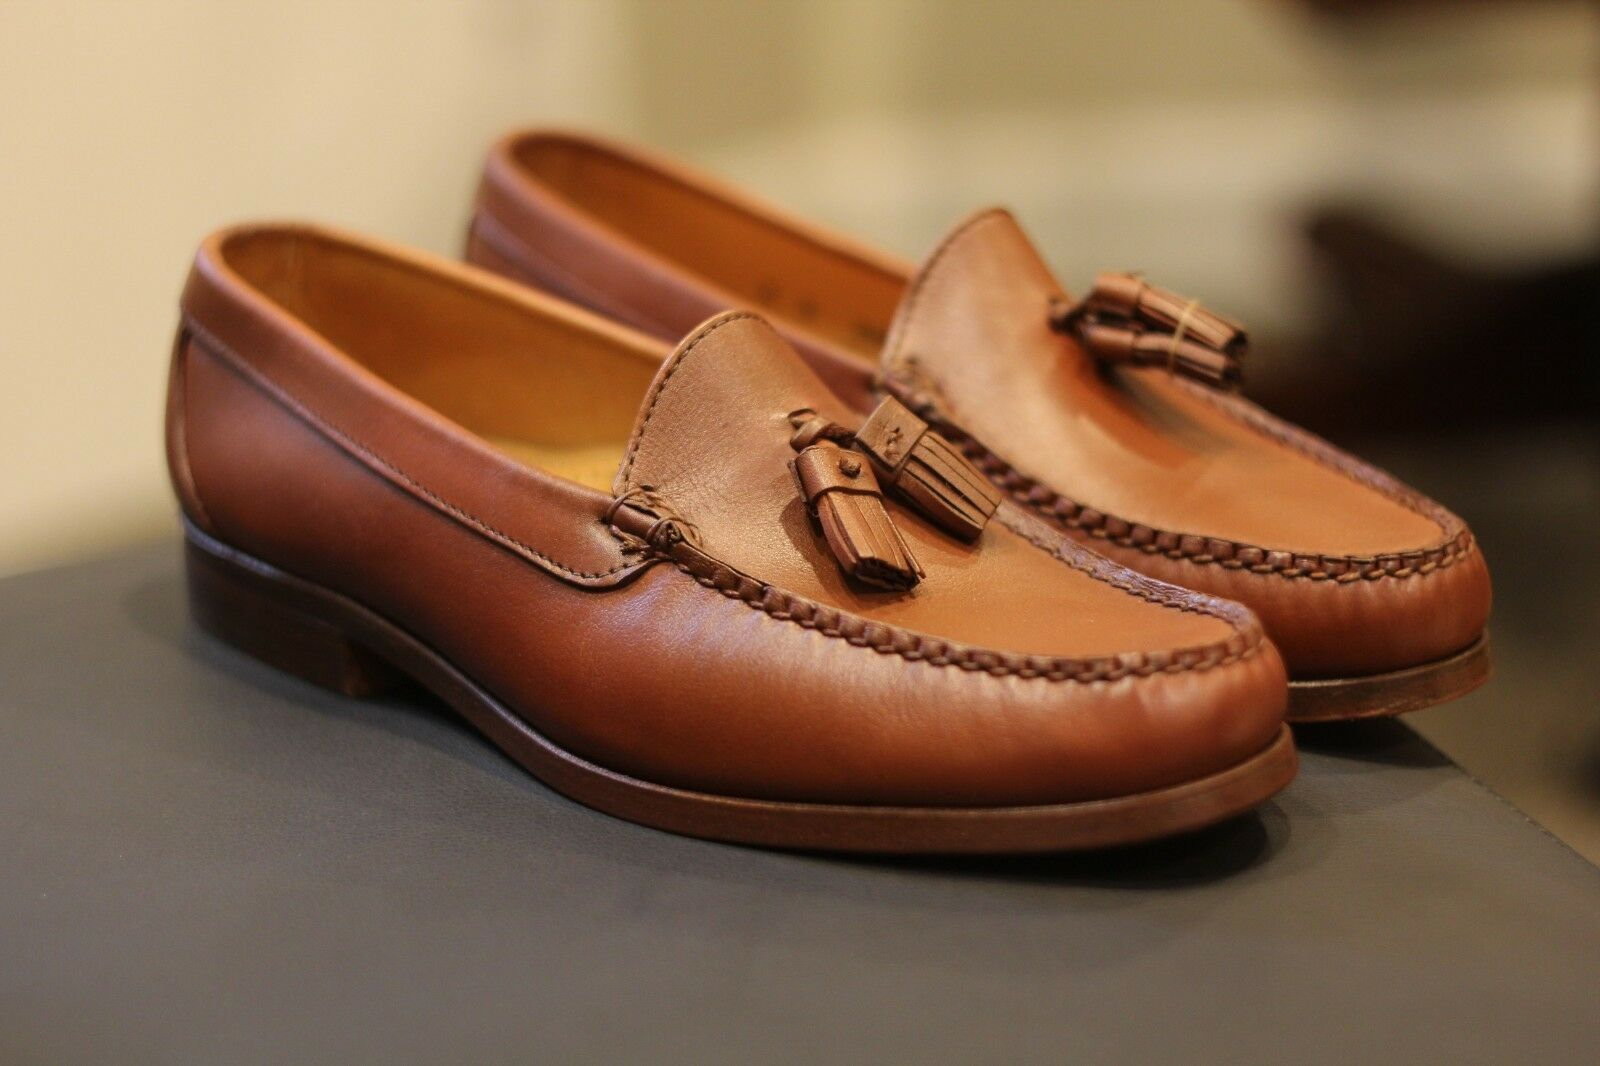 Alden H435 Brown Leather Loafers Rare Discontinued shoes Made in USA Size 9 D